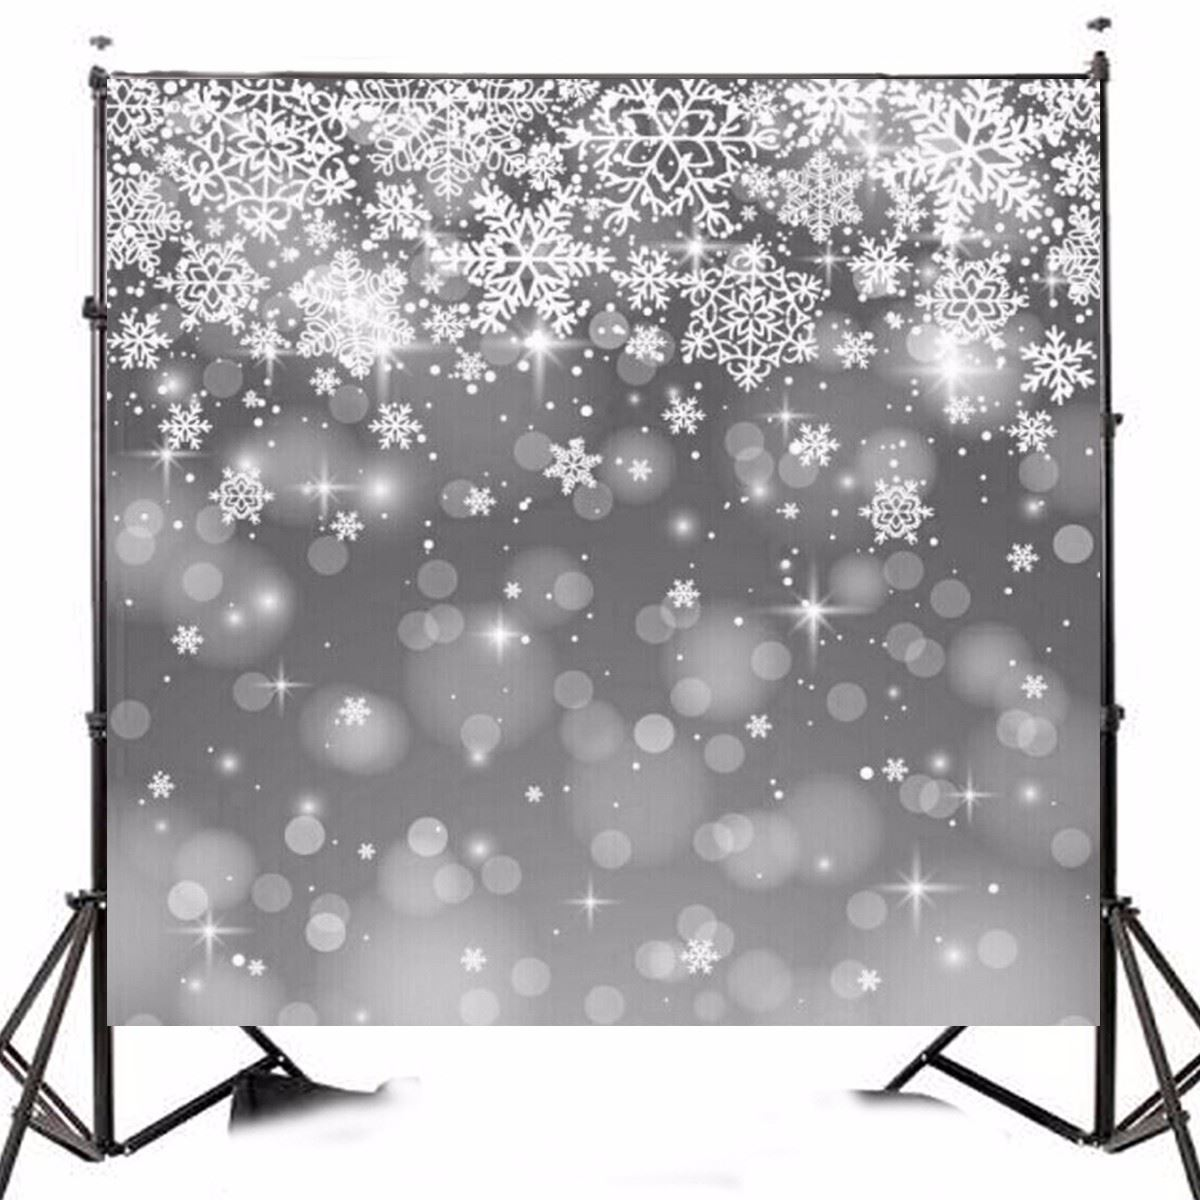 10x10ft Backdrop Christmas Theme Snowflake Stars Vinyl Photography Background cloth For Studio Photo 3x3meters waterproof